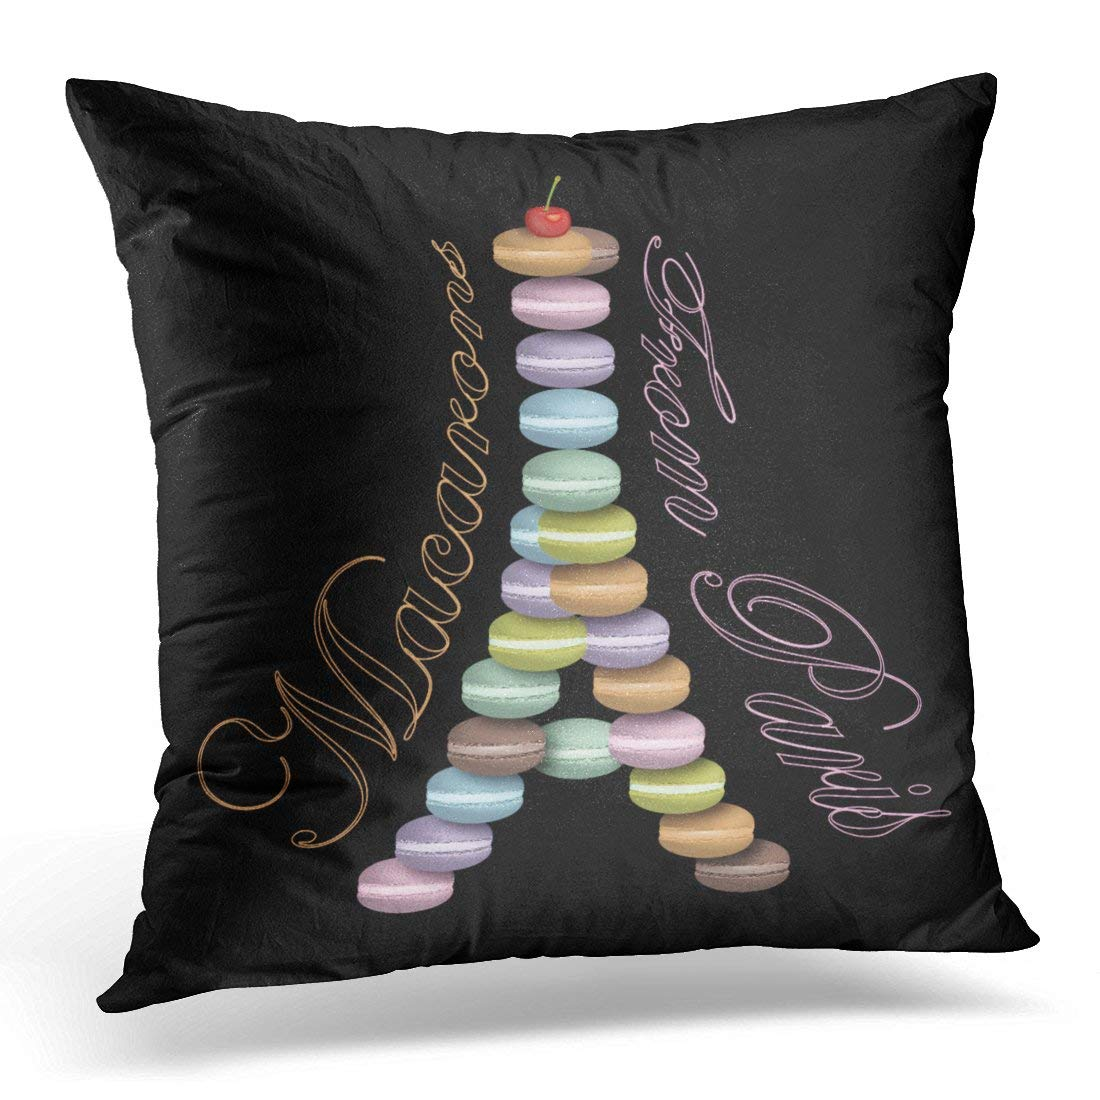 ARTJIA Macaroon Macarons Paris Cake French Eiffel Tower Pastry Pillowcase Cushion Cover 20x20 inches